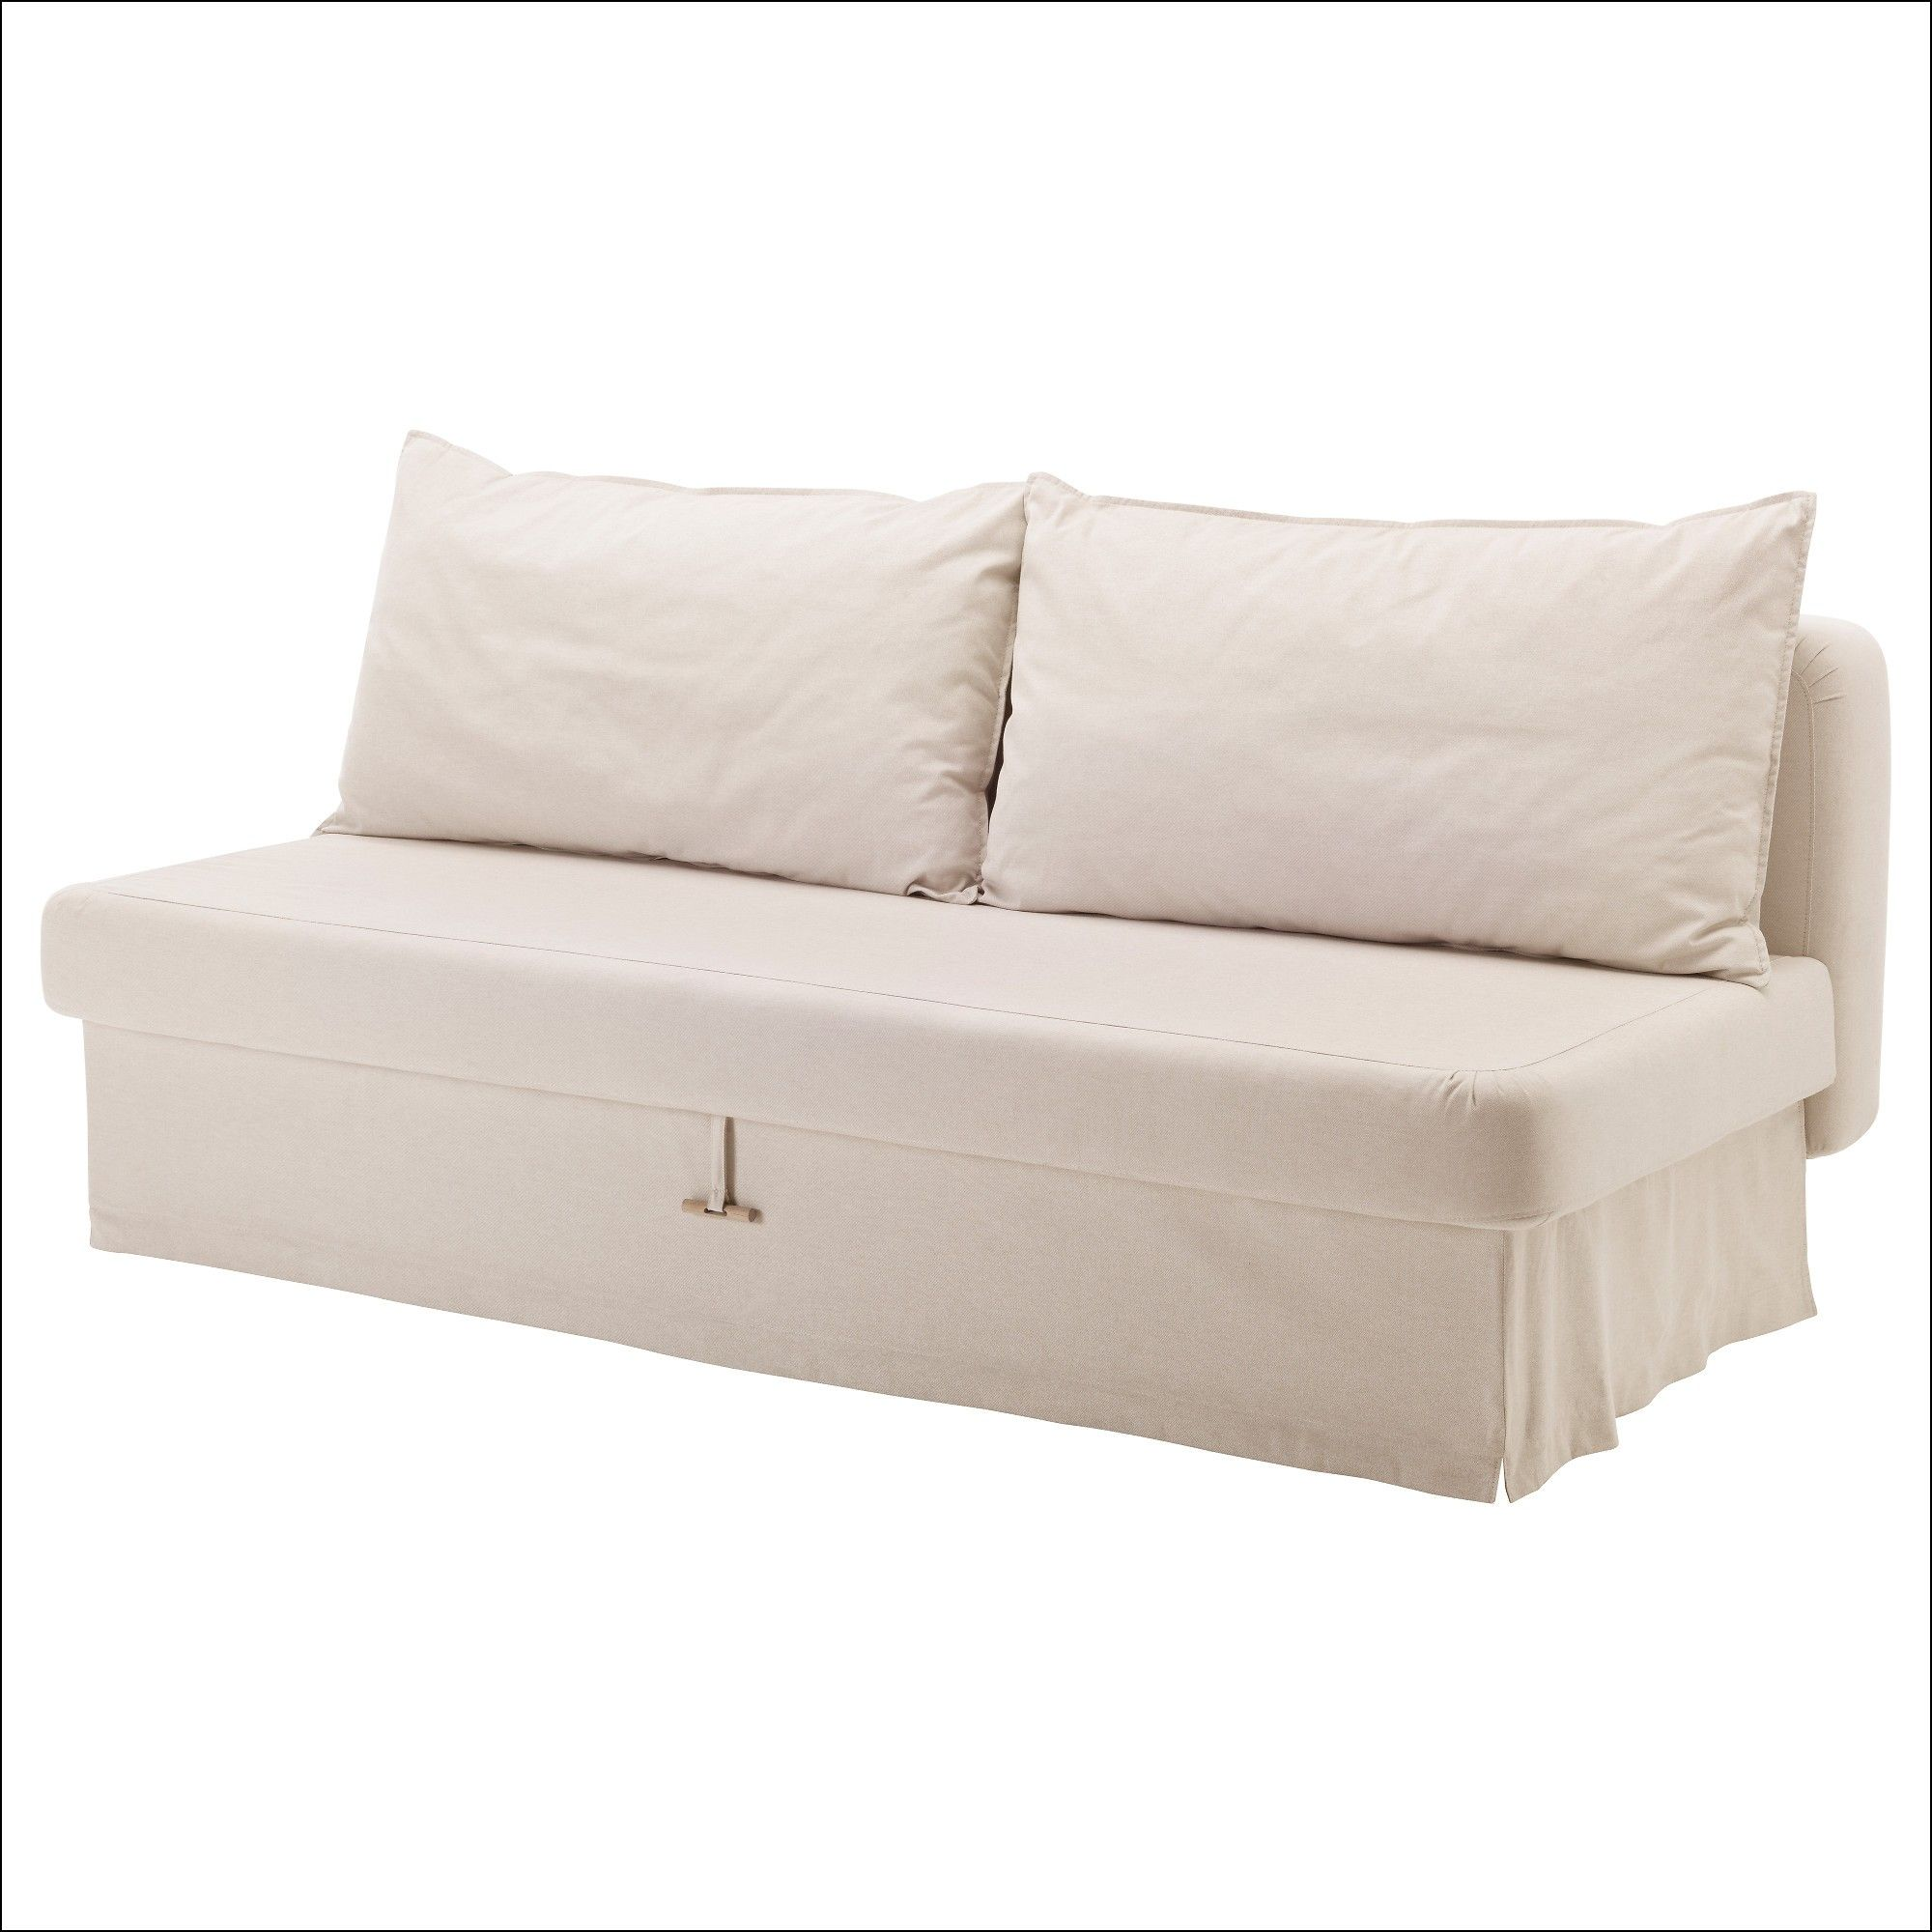 Single sofa Bed Chair Ikea Couch & Sofa Gallery